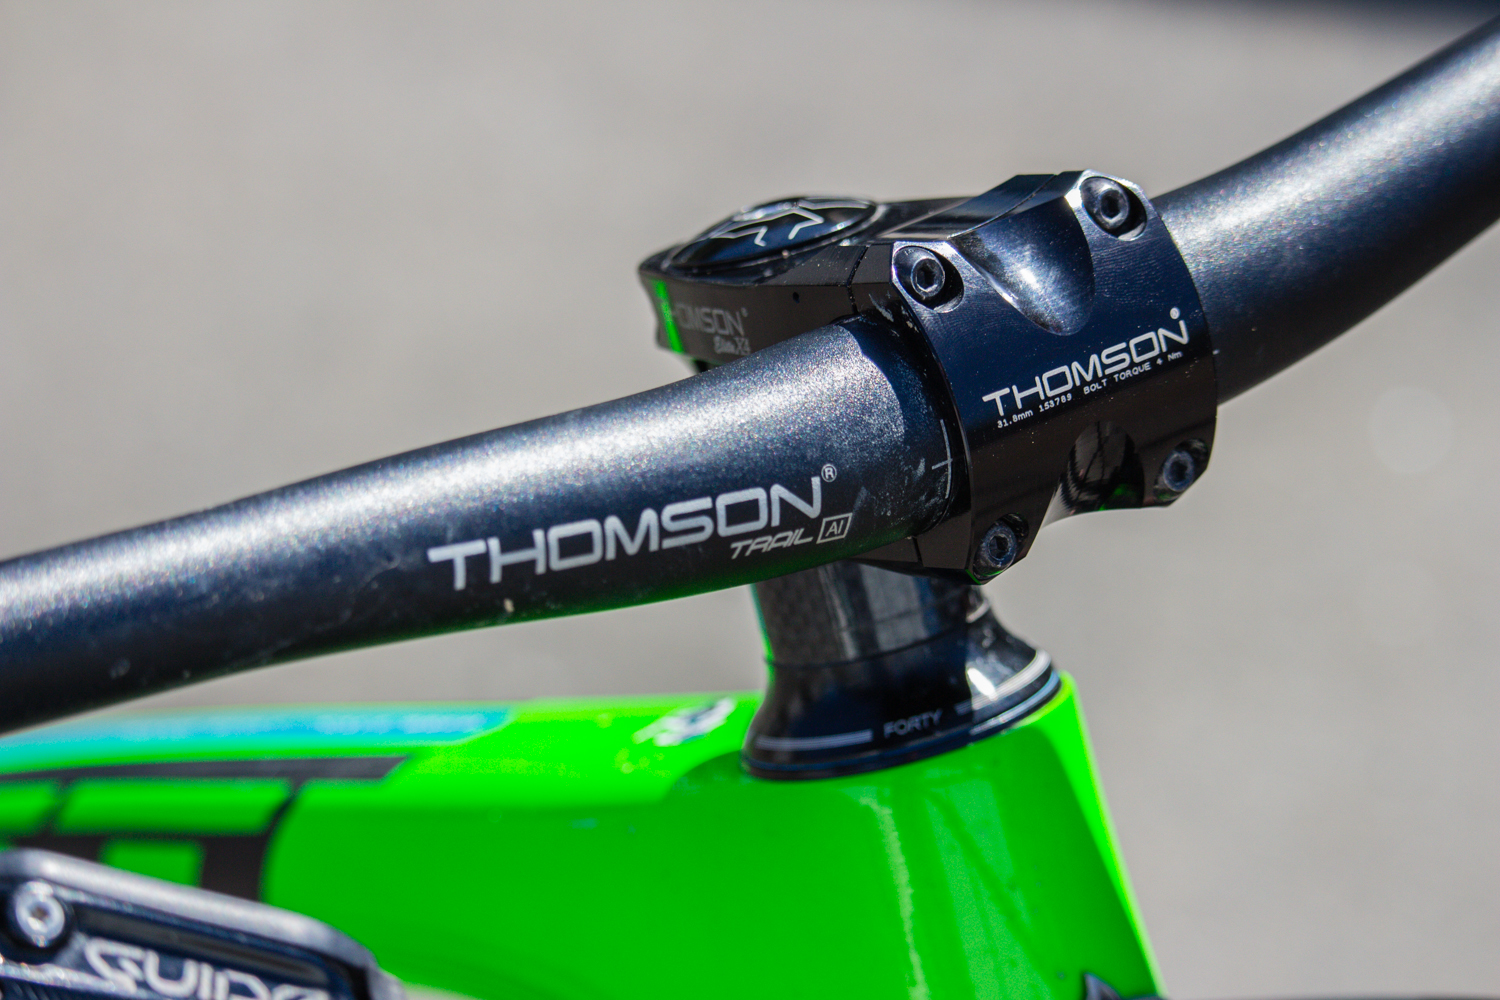 The cockpit (bars and stem) and the dropper post are provided by Thomson.